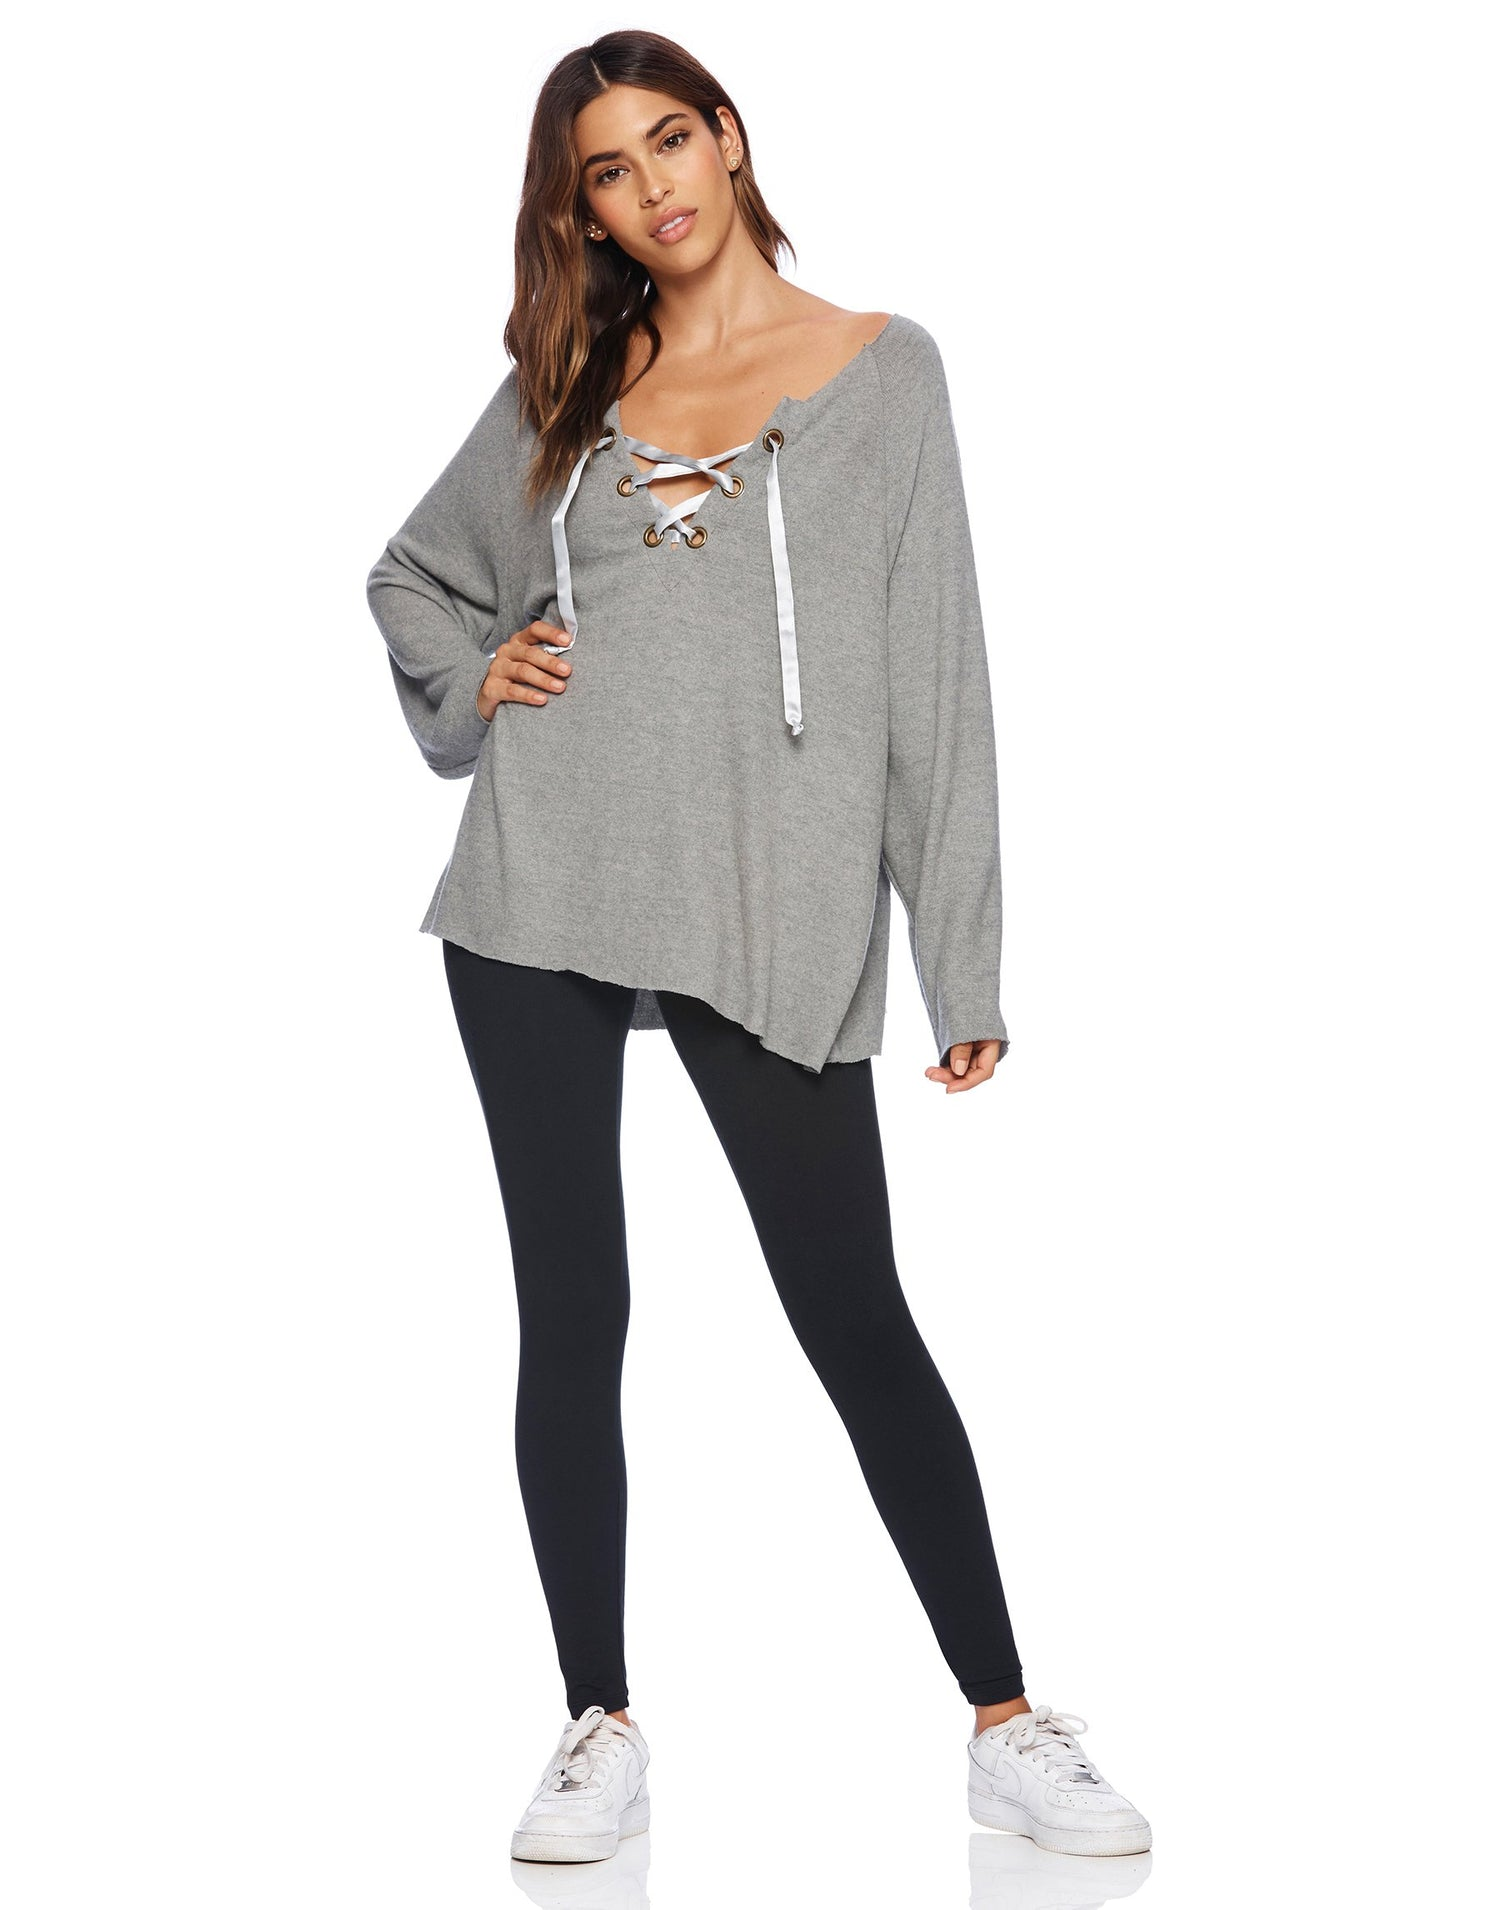 Josie Sweatshirt in Heather Gray with Lace Up Detail - alternate front view